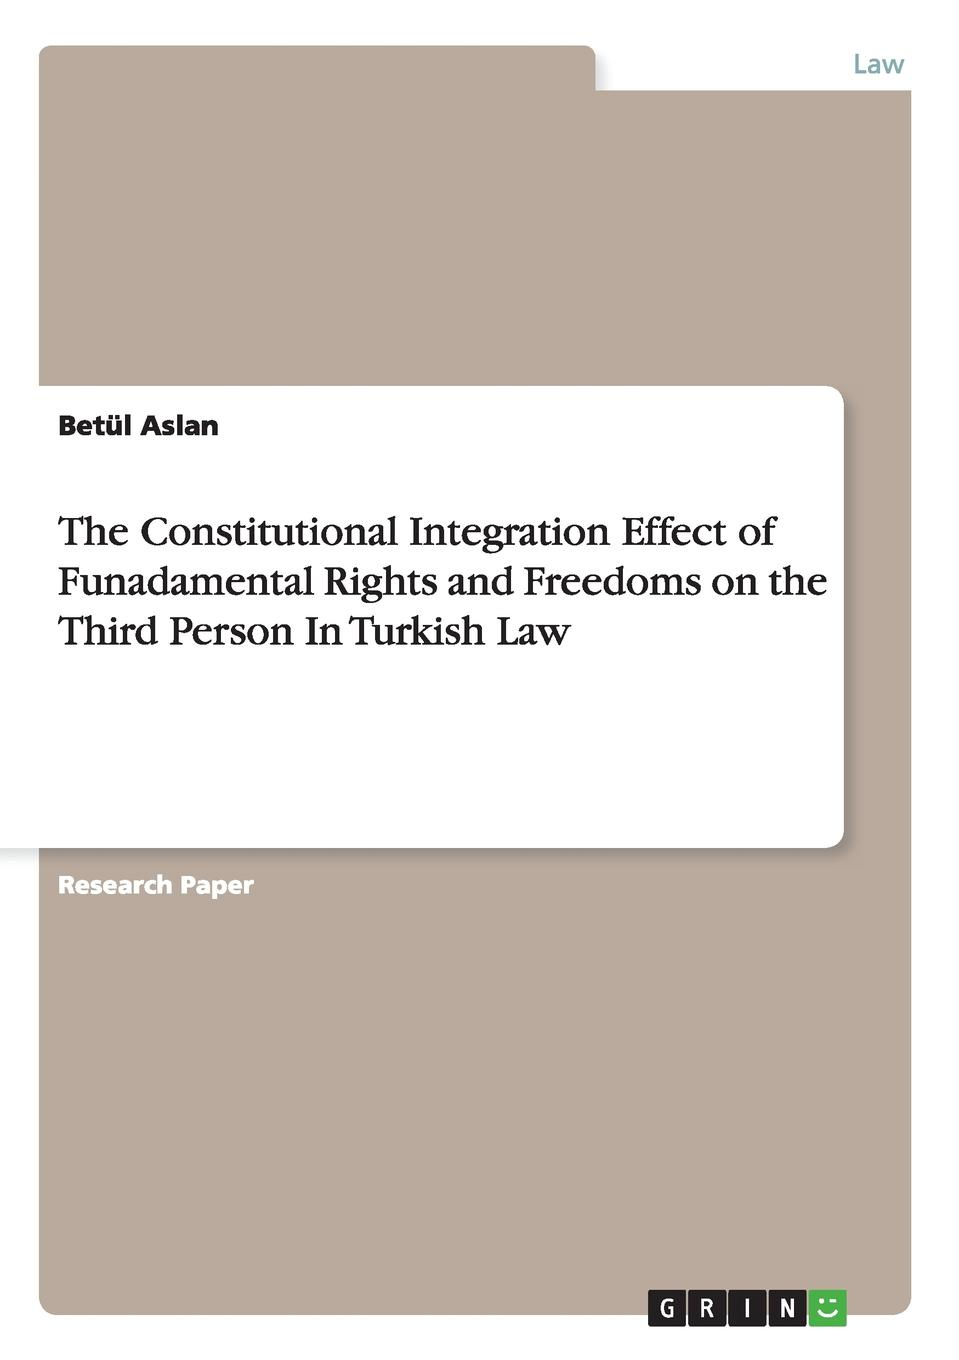 Betül Aslan The Constitutional Integration Effect of Funadamental Rights and Freedoms on the Third Person In Turkish Law bdsm and the law